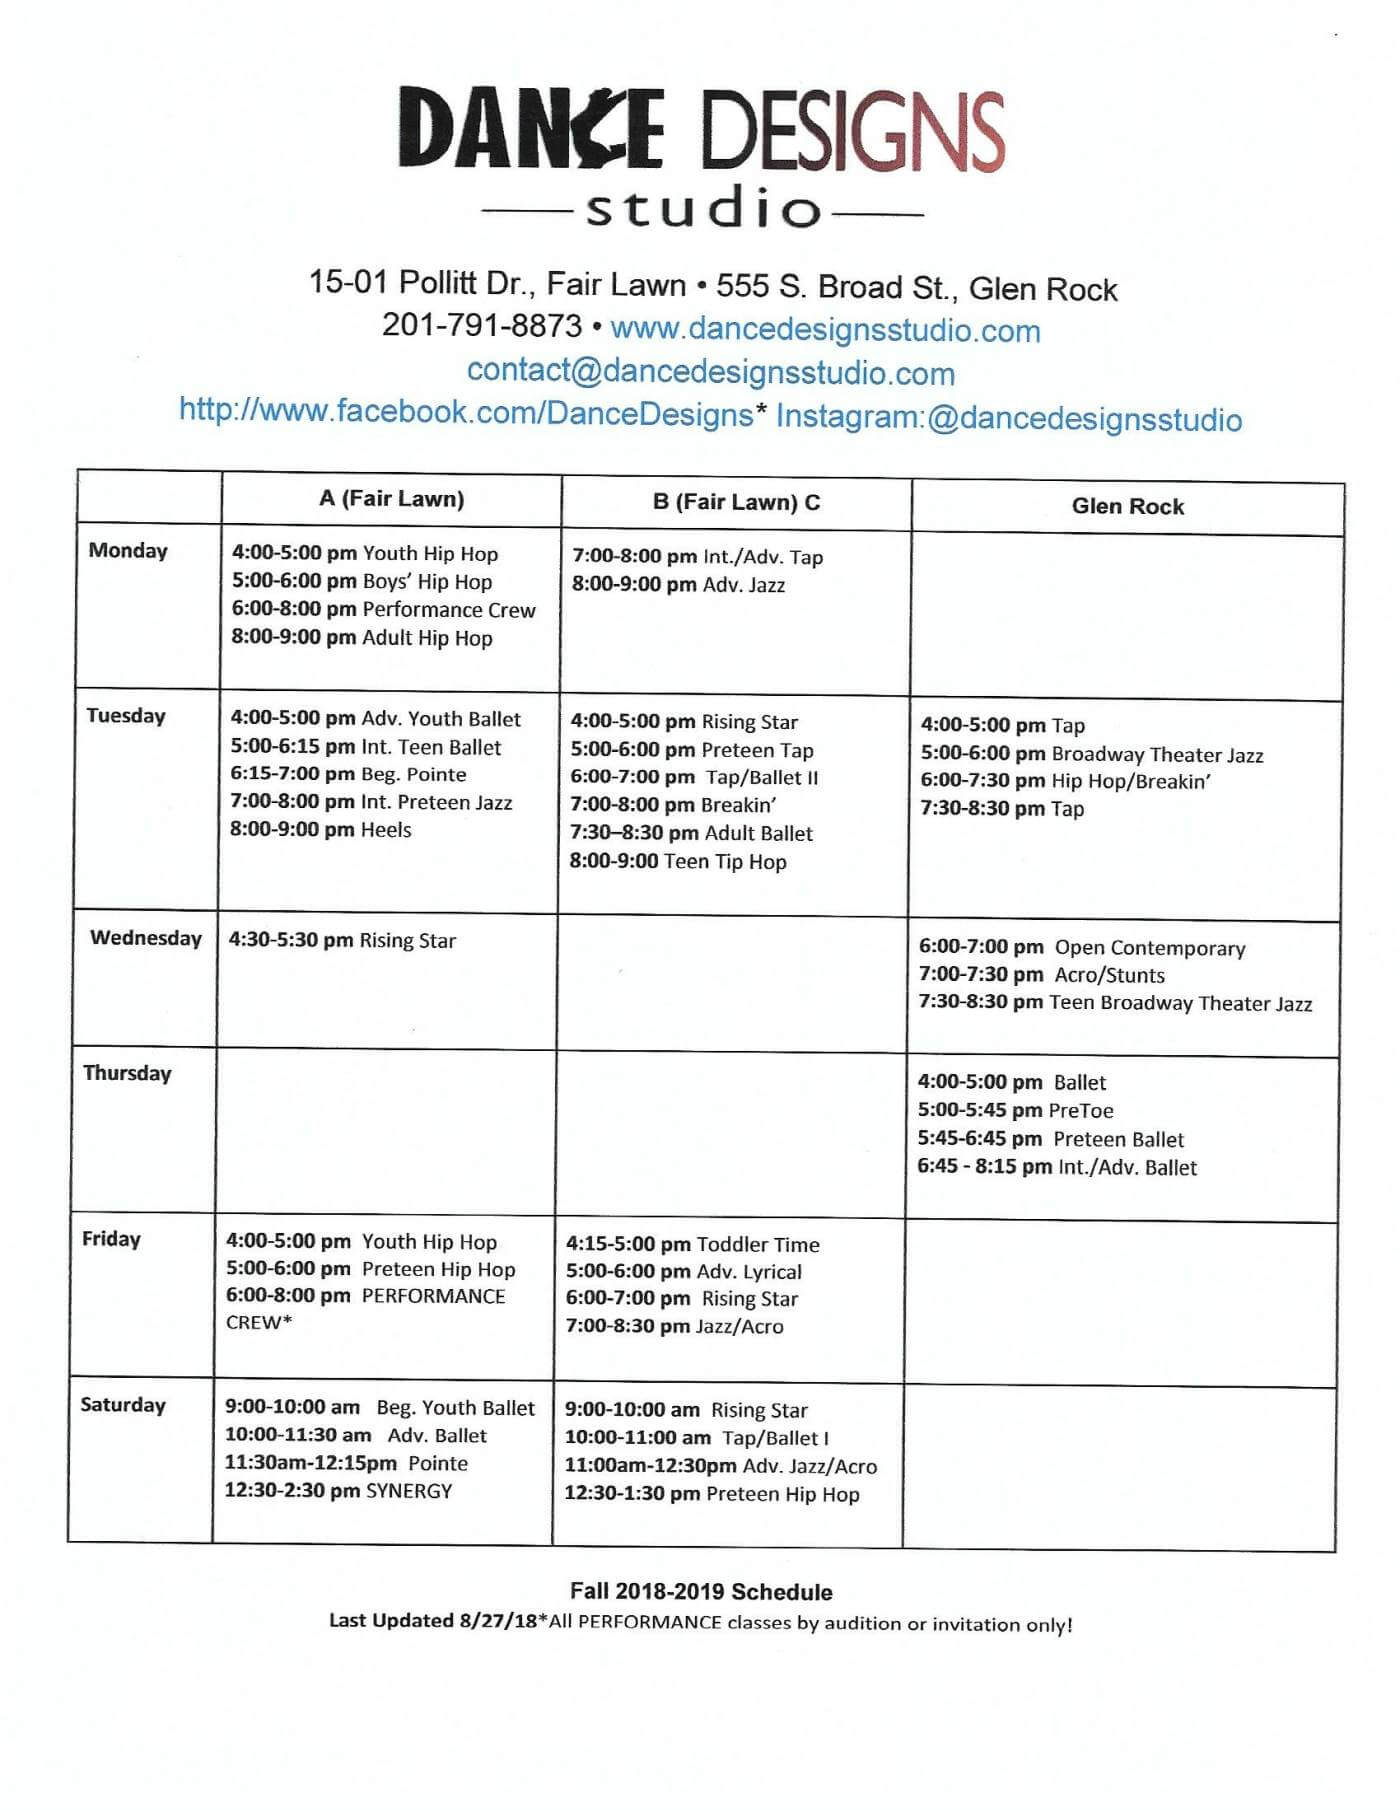 Fall-Schedule-Aug-27-2018